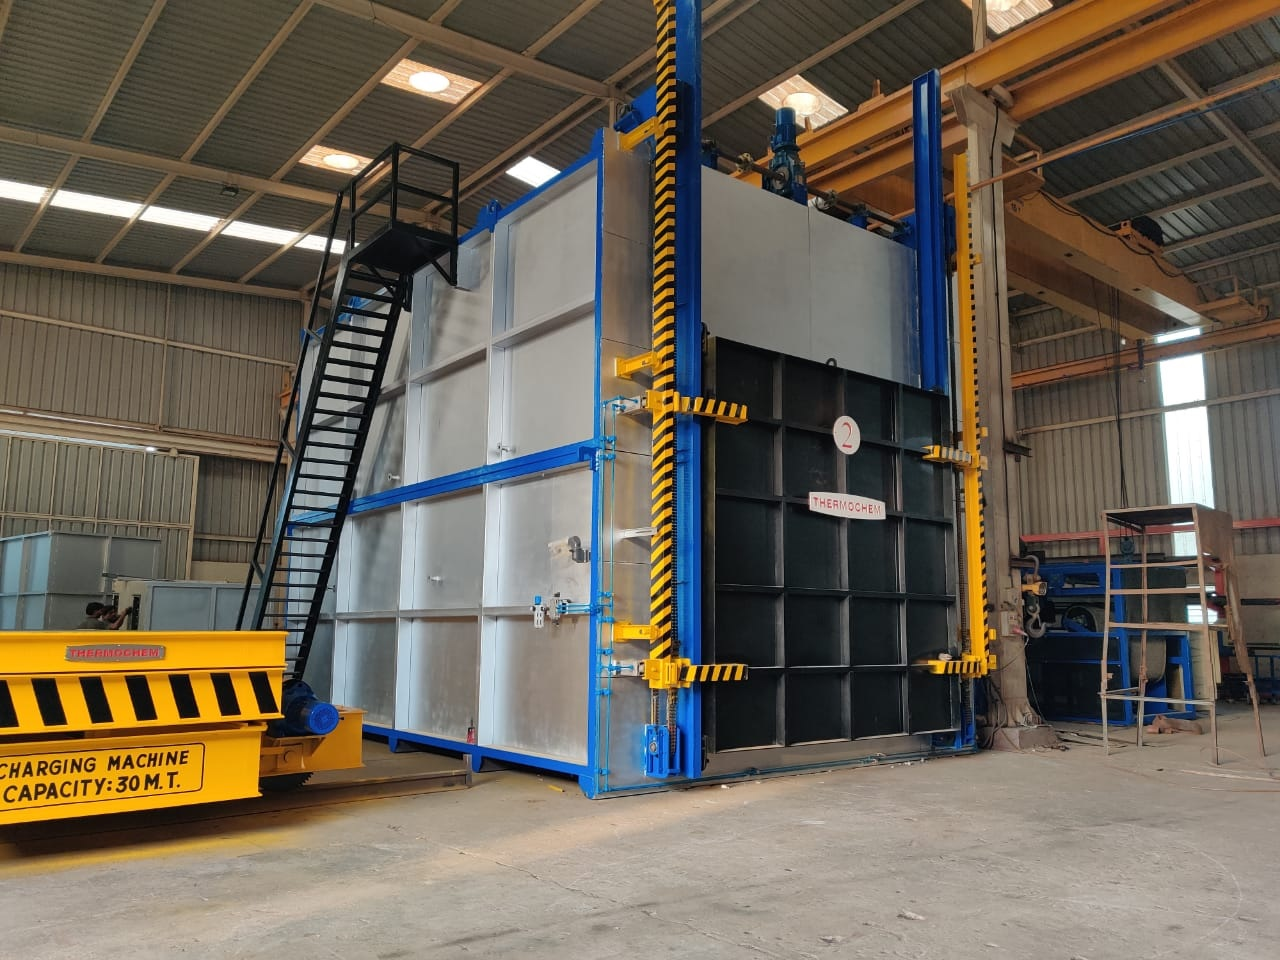 Aluminium Annealing Furnace Manufacturers, Thermochem Furnaces Pvt Ltd